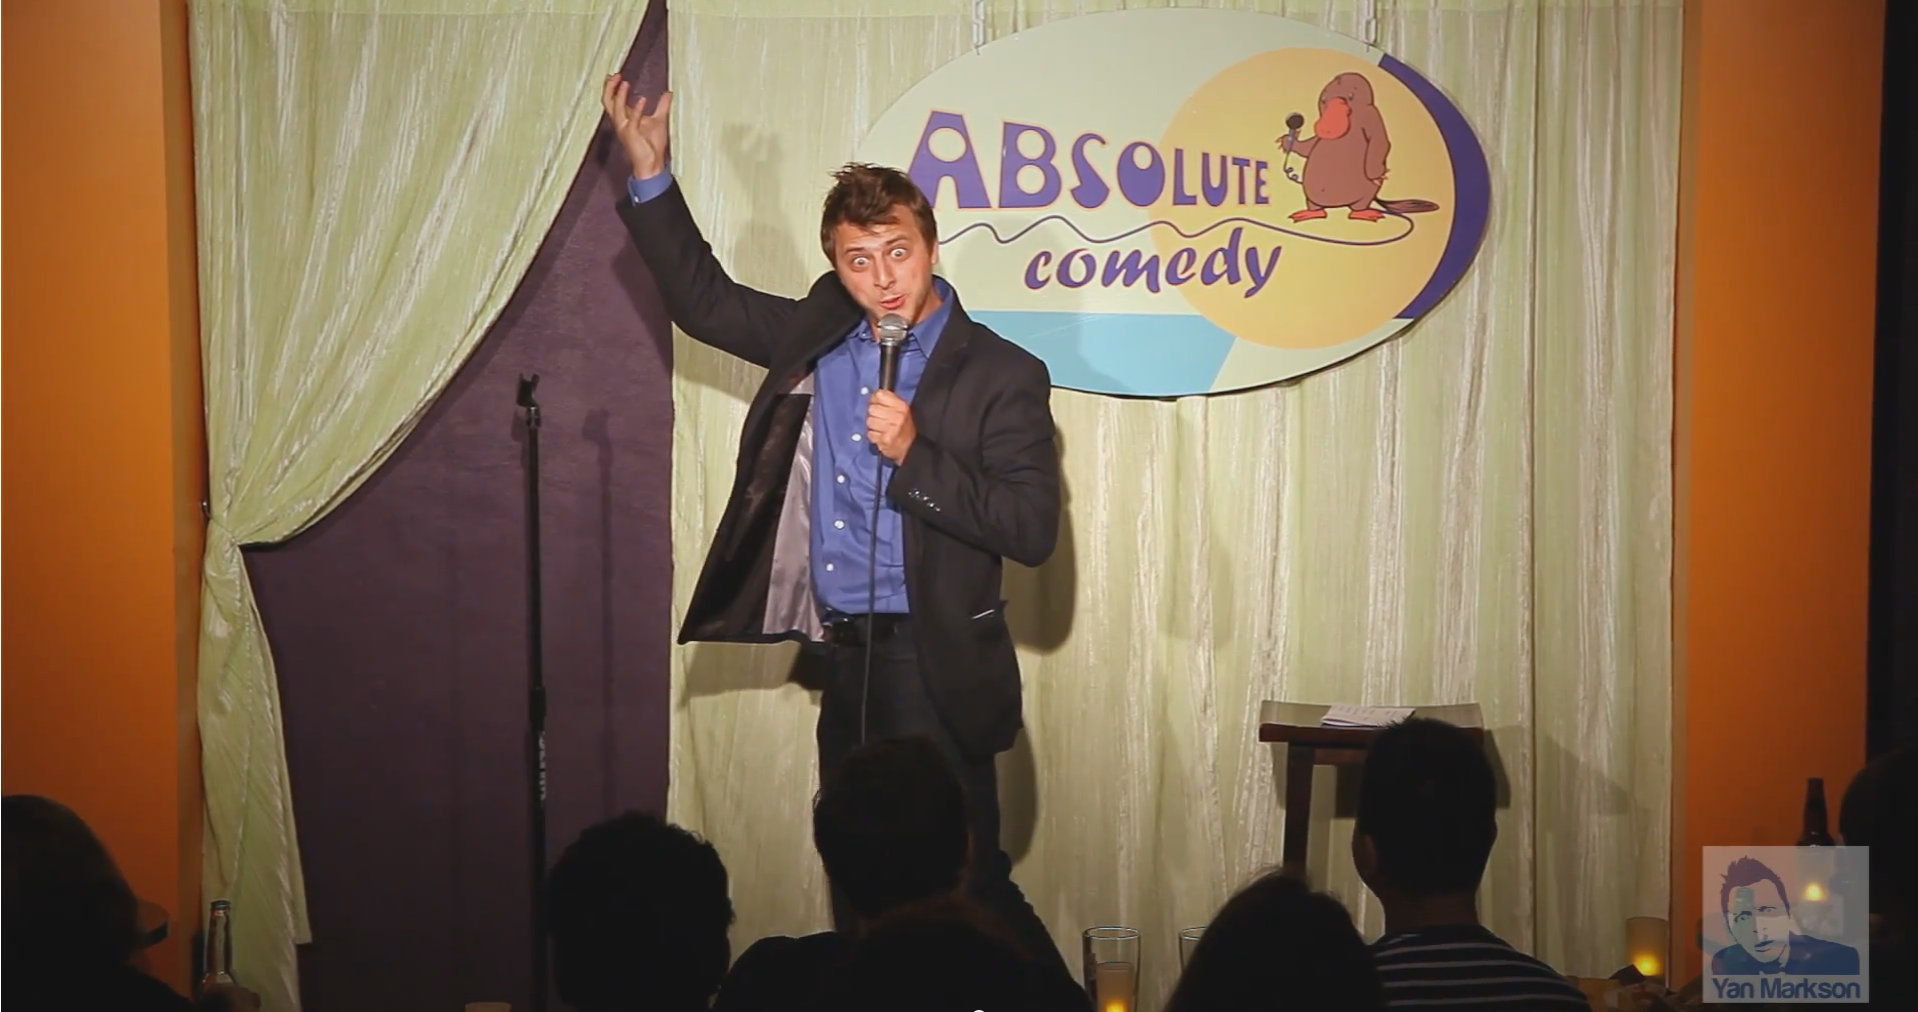 Yan Markson doing standup and magic at Absolute Comedy